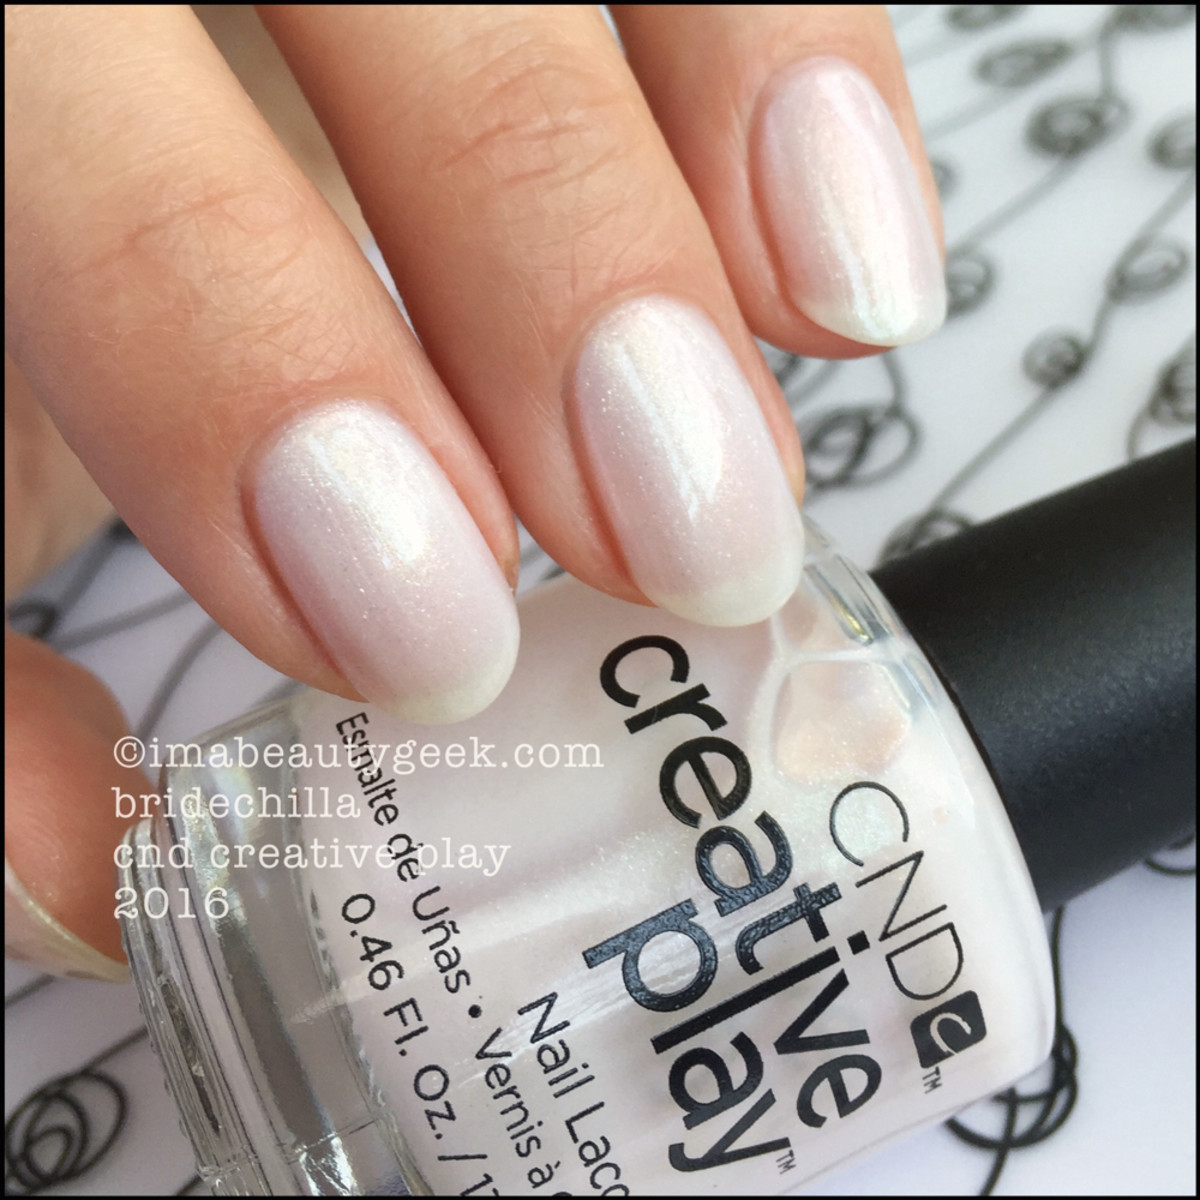 CND Creative Play Bridechilla_CND Creative Play Nail Lacquer 2016 Swatches